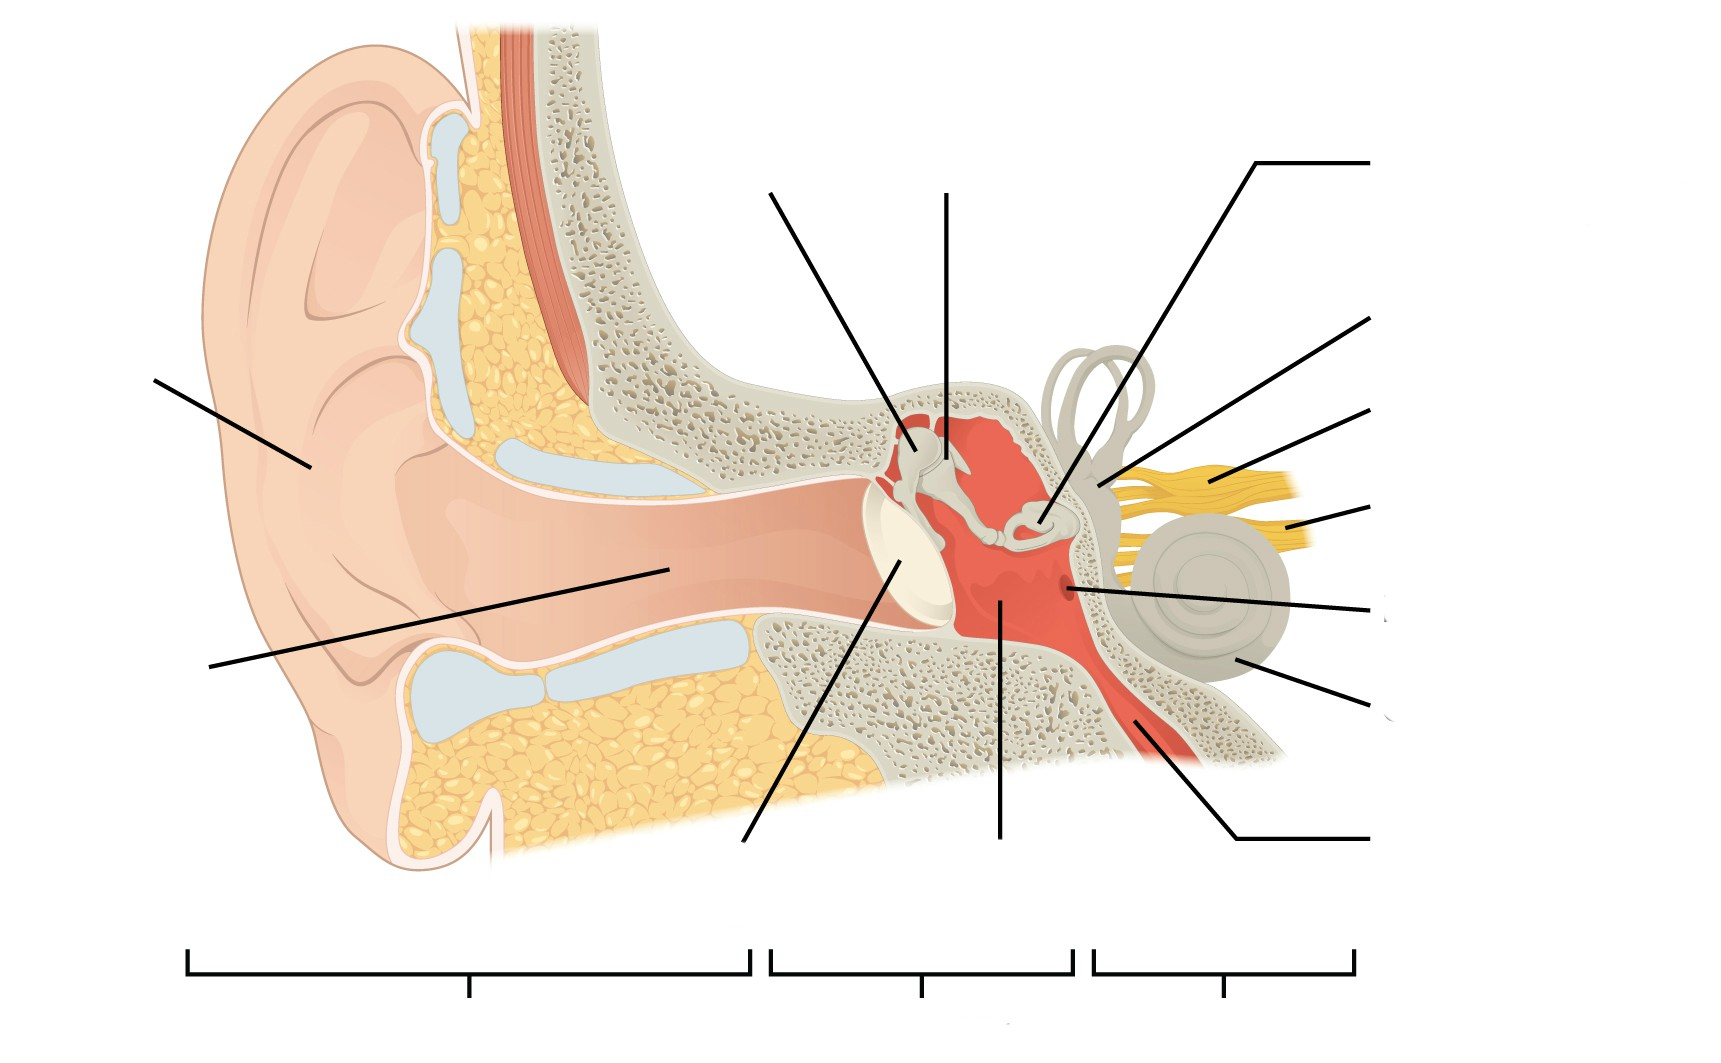 Predefined space to Label the regions and structures of Human Anatomy Ear